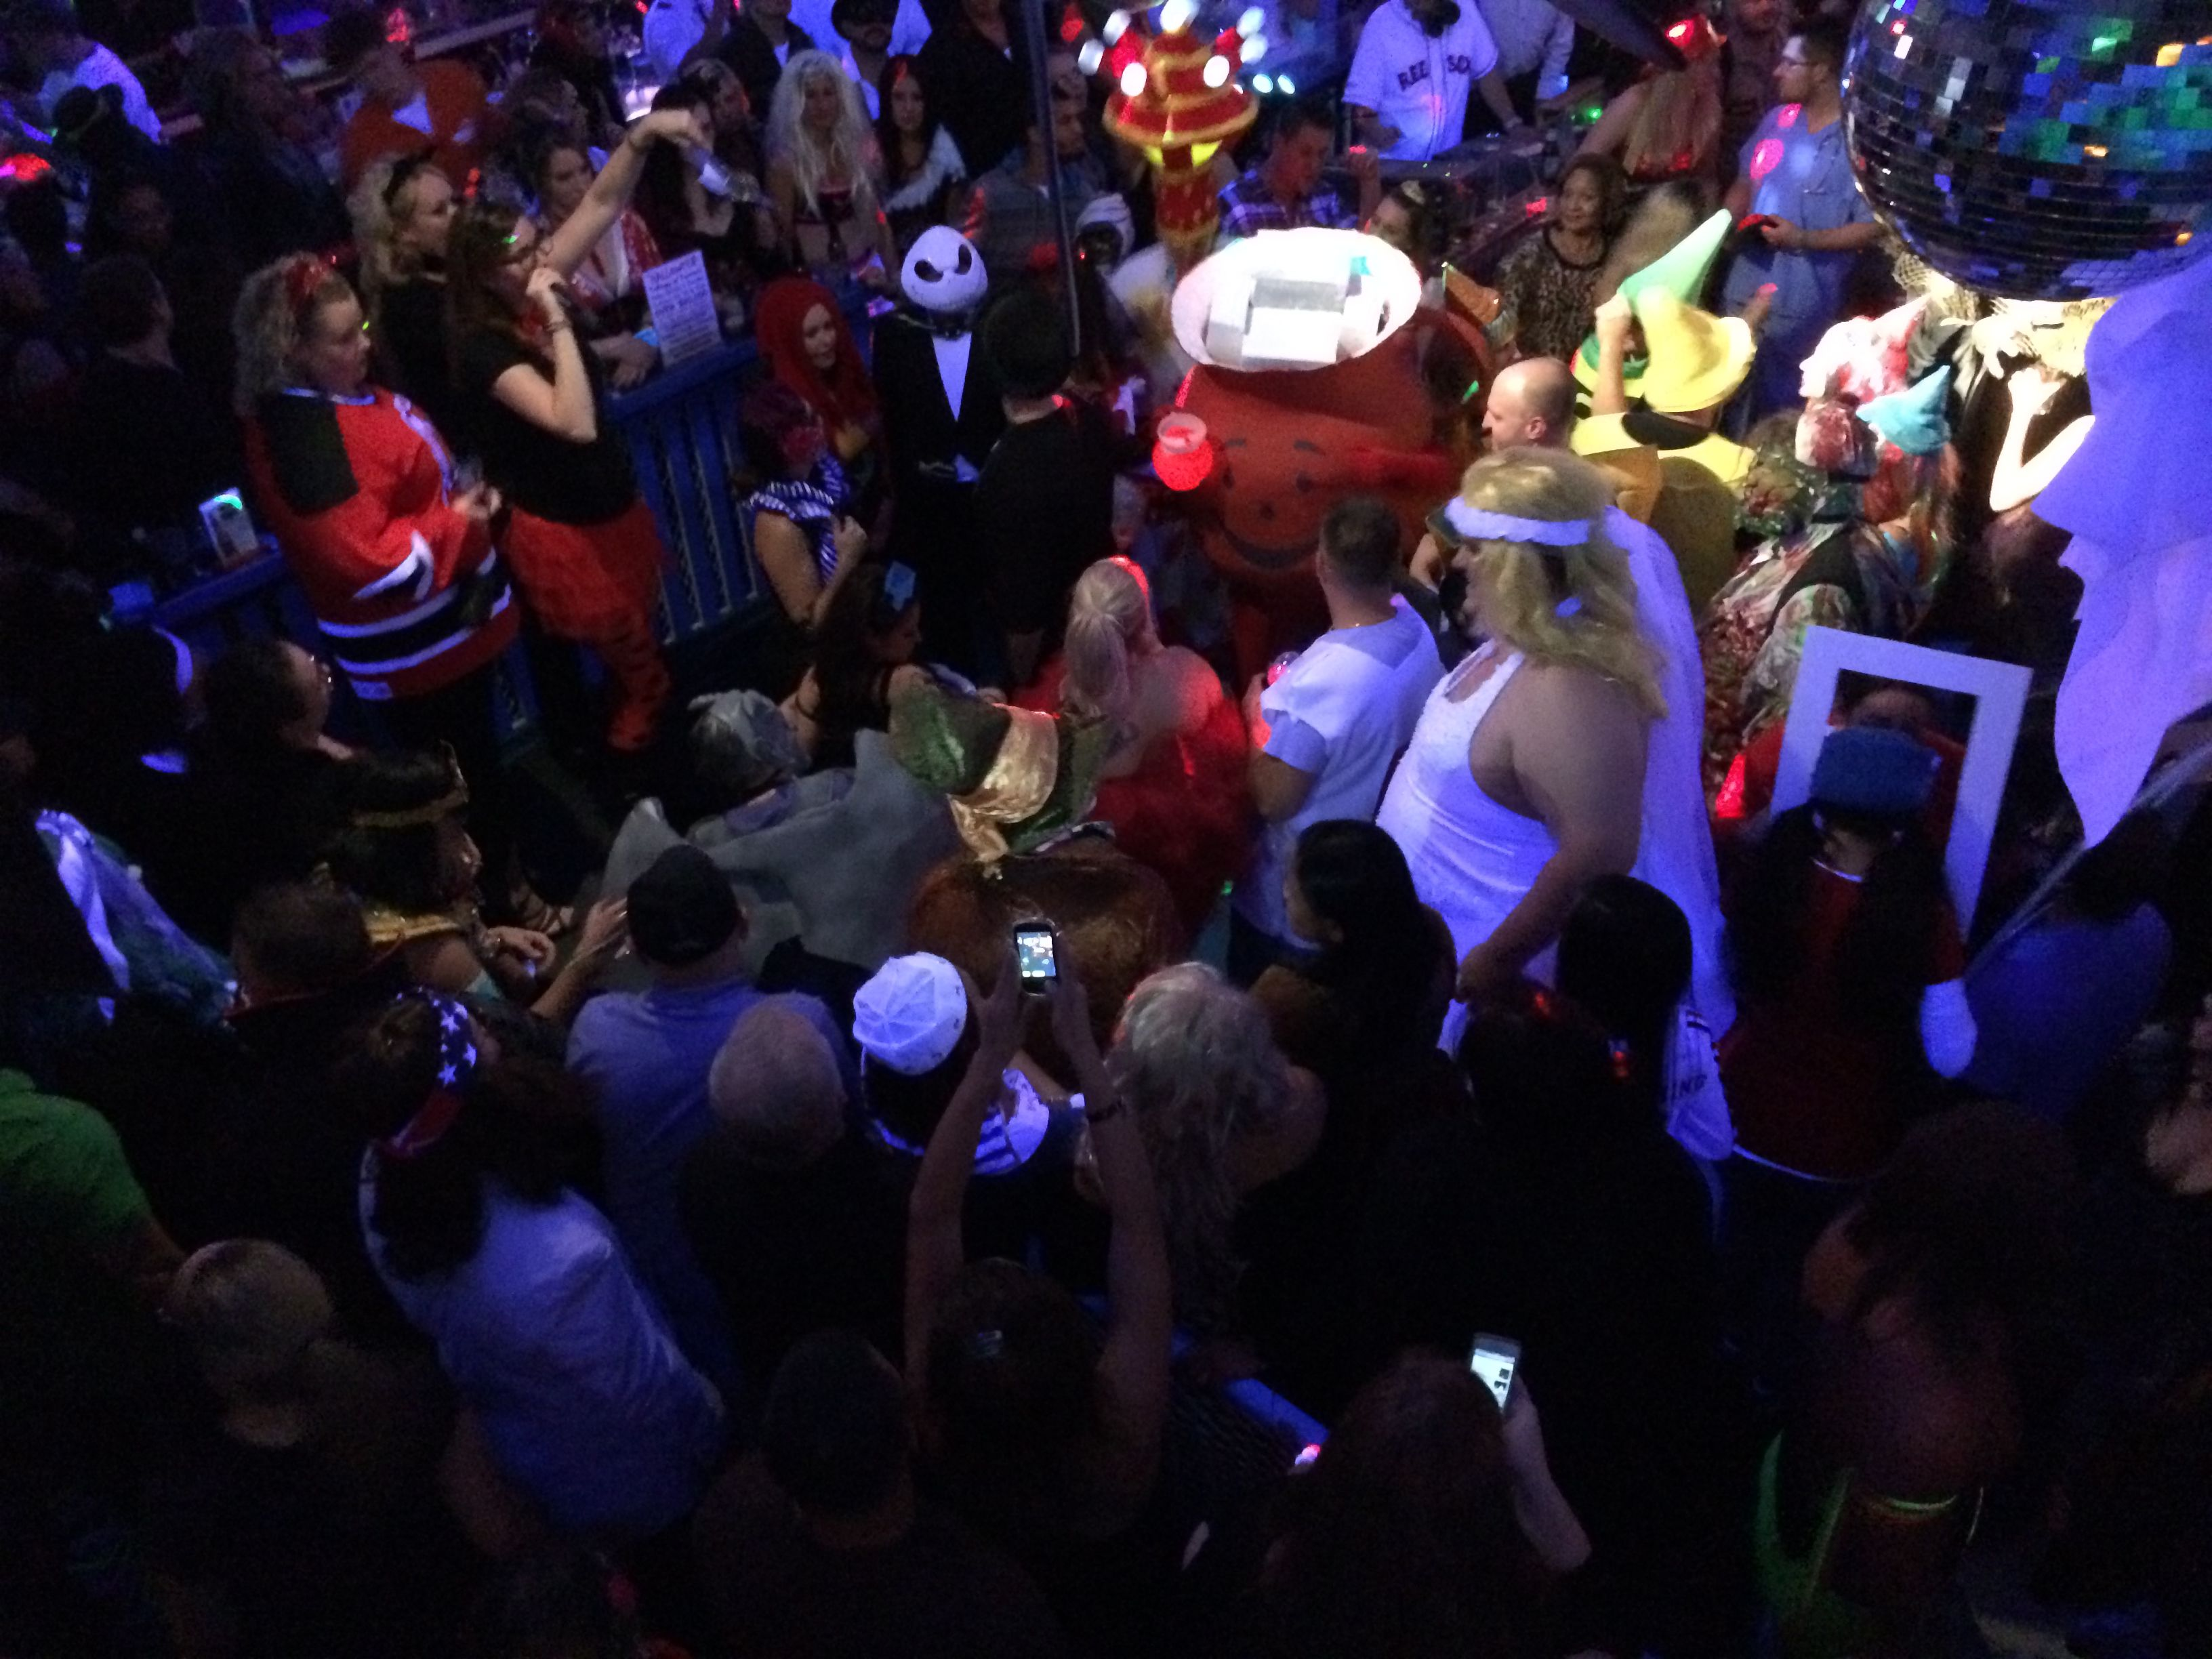 Kool Aid Man Partying With His Kool Fans Homemade Costumes Man Party Kool Aid Man